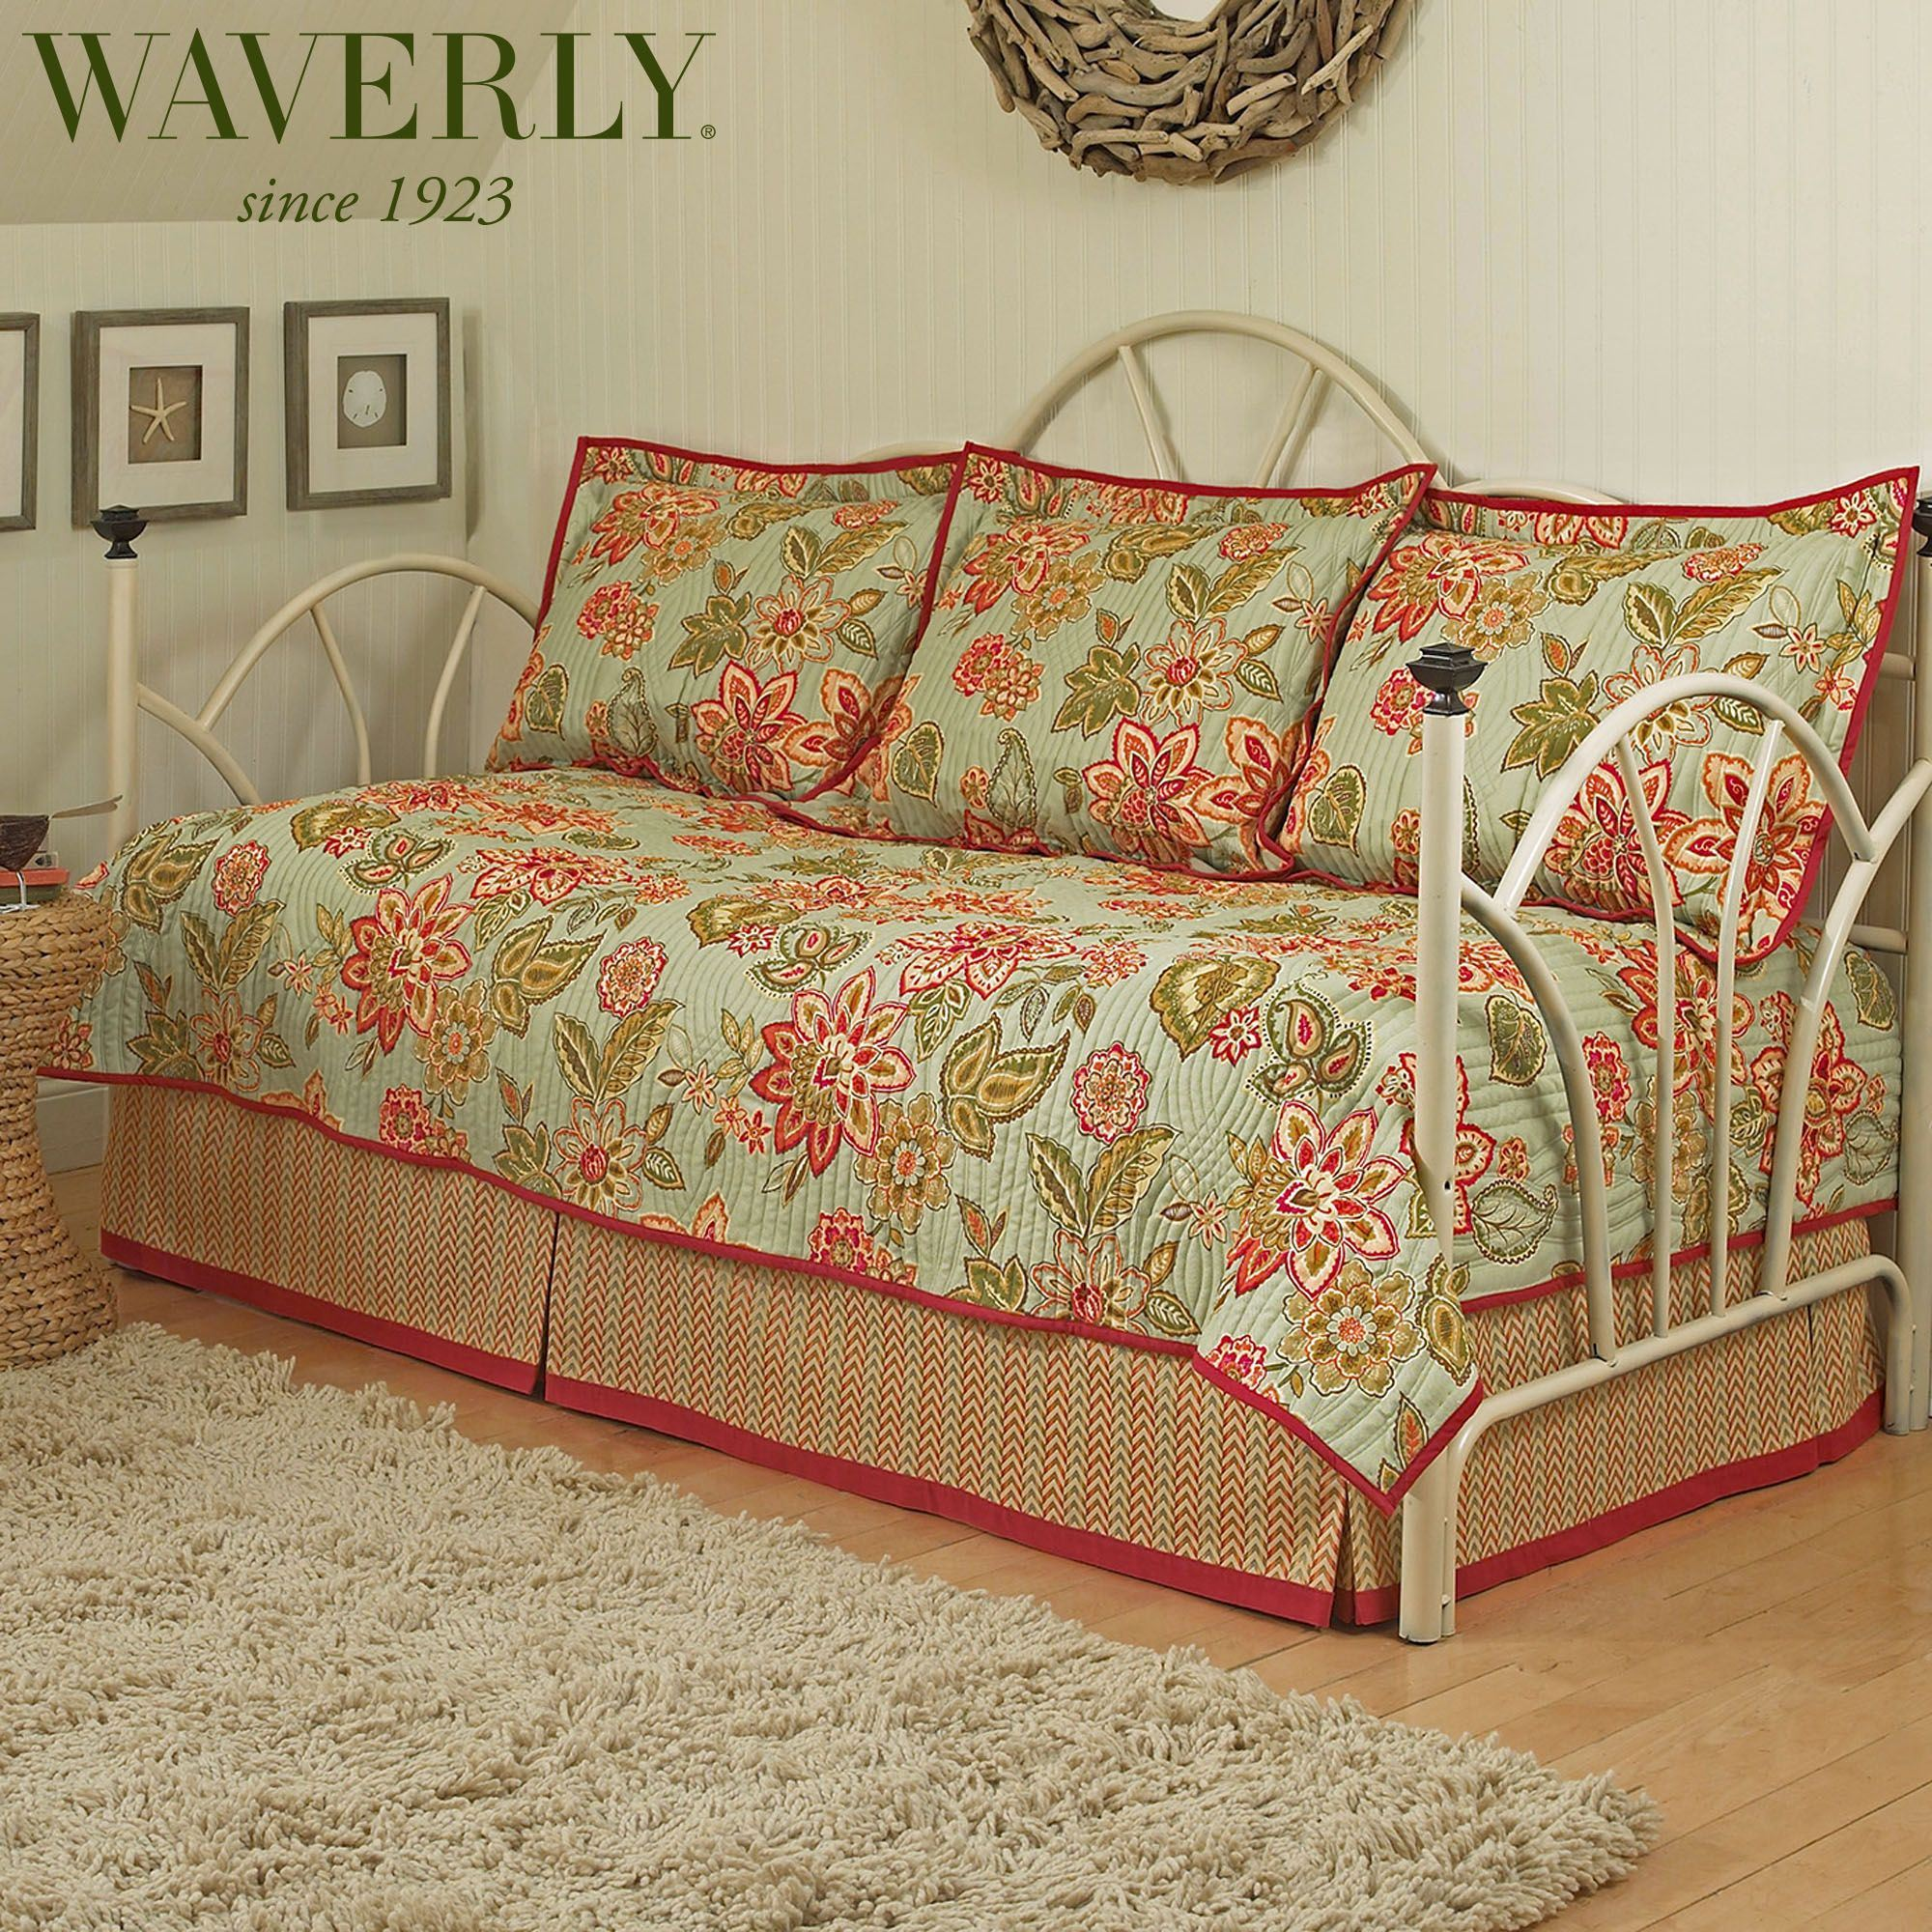 pin piece charismatic quilts collection decor quilt bedding waverly bedroom